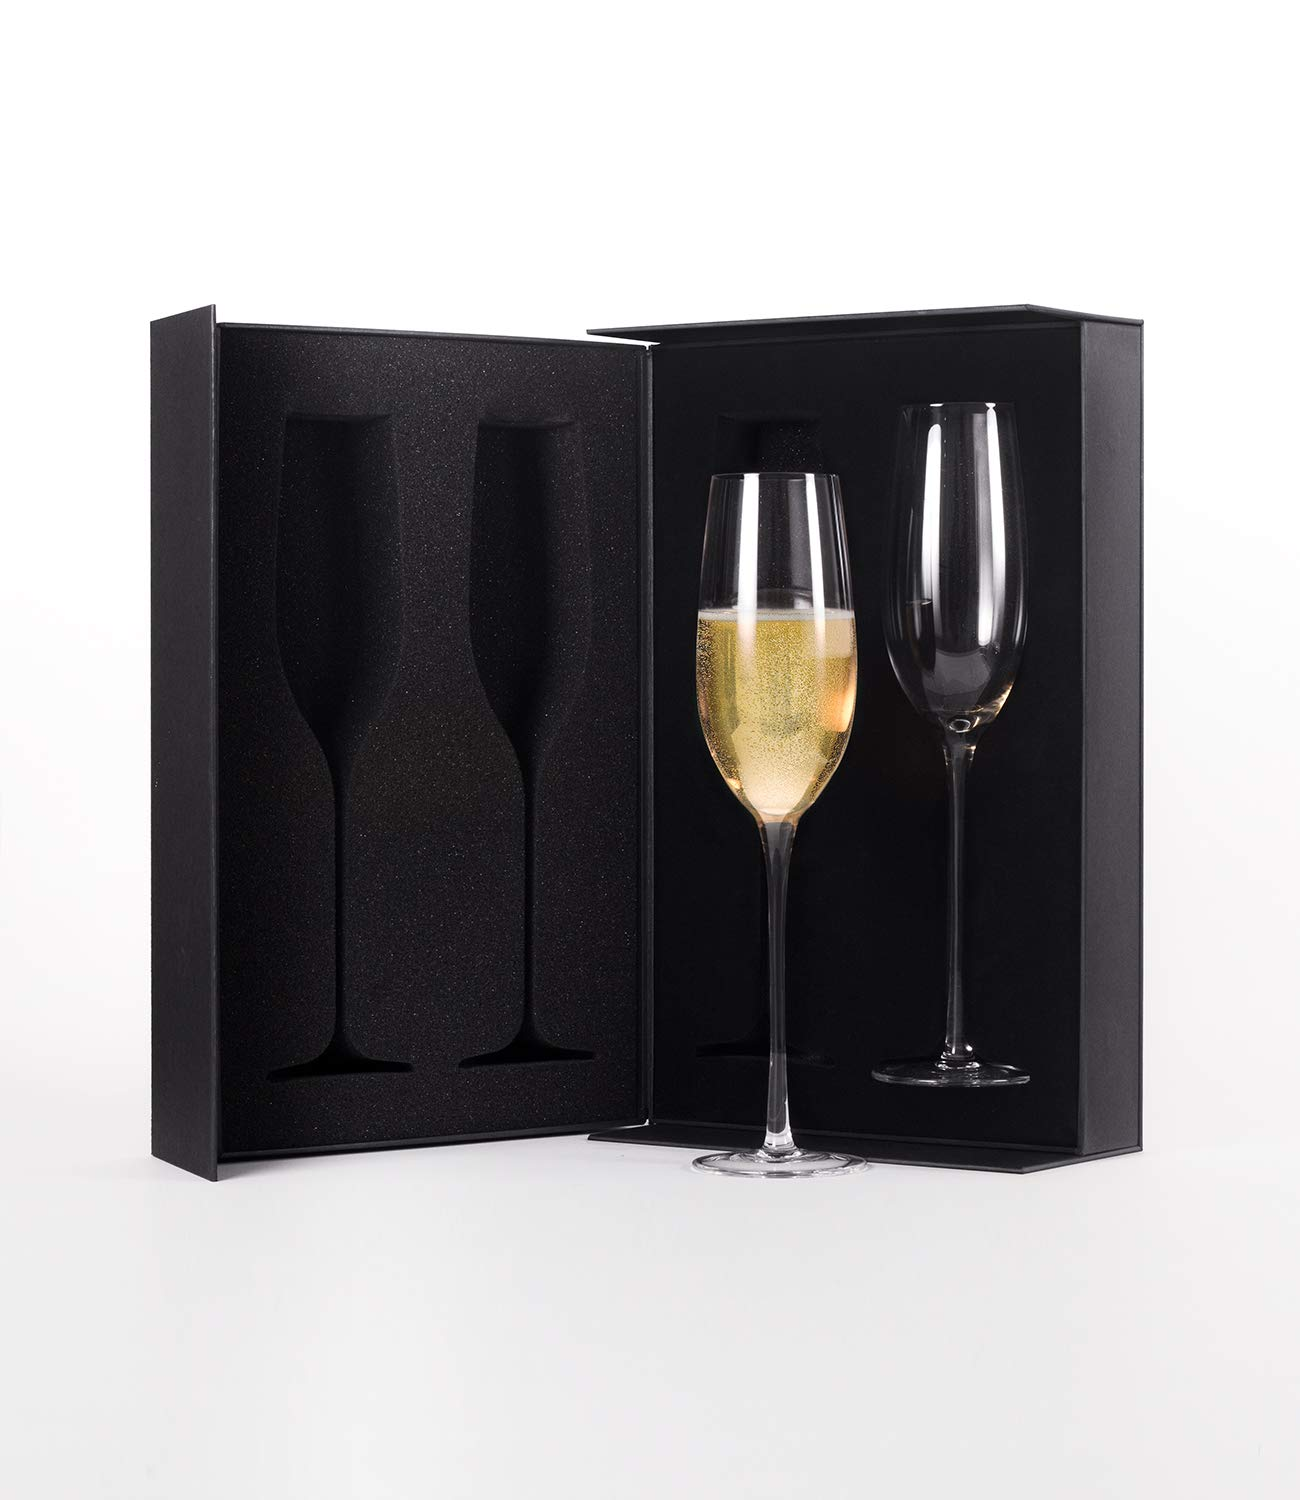 The Excelsior by DUX - Handmade, 100% Lead-Free, Crystal Champagne Flutes, Set of 2 Glasses, Elegant Gift Box by DUX (Image #3)